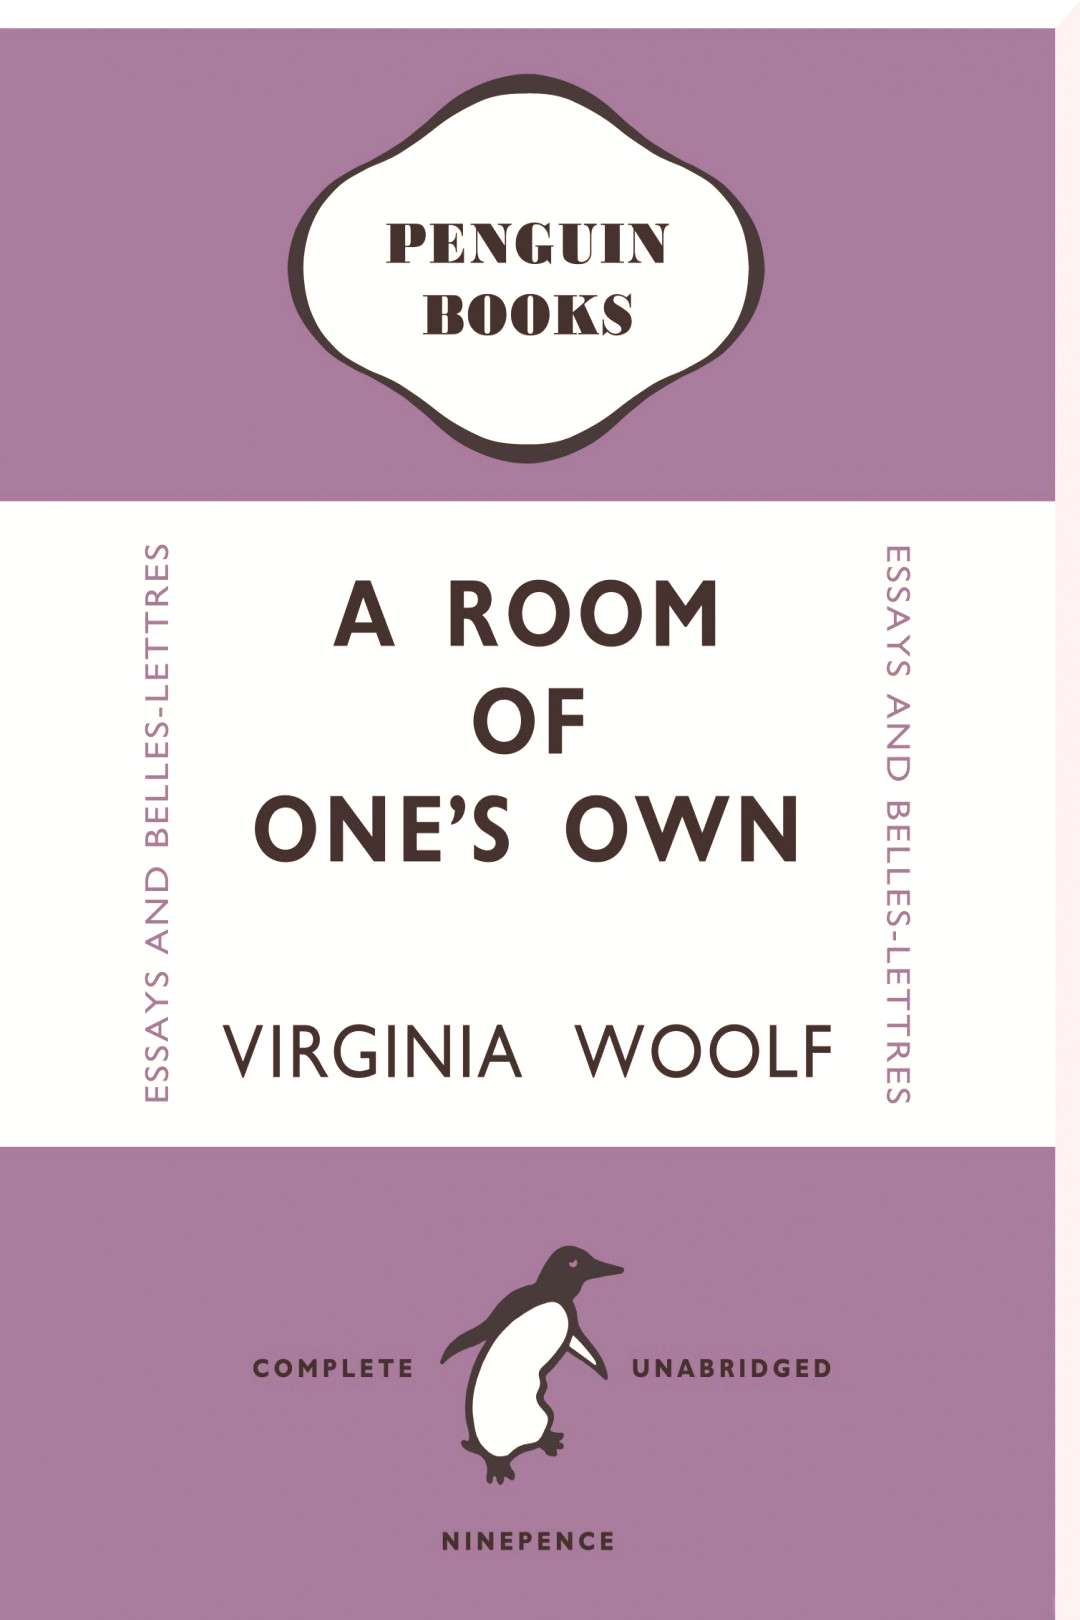 Penguin Books - Virginia Woolf A Room Of One's Own